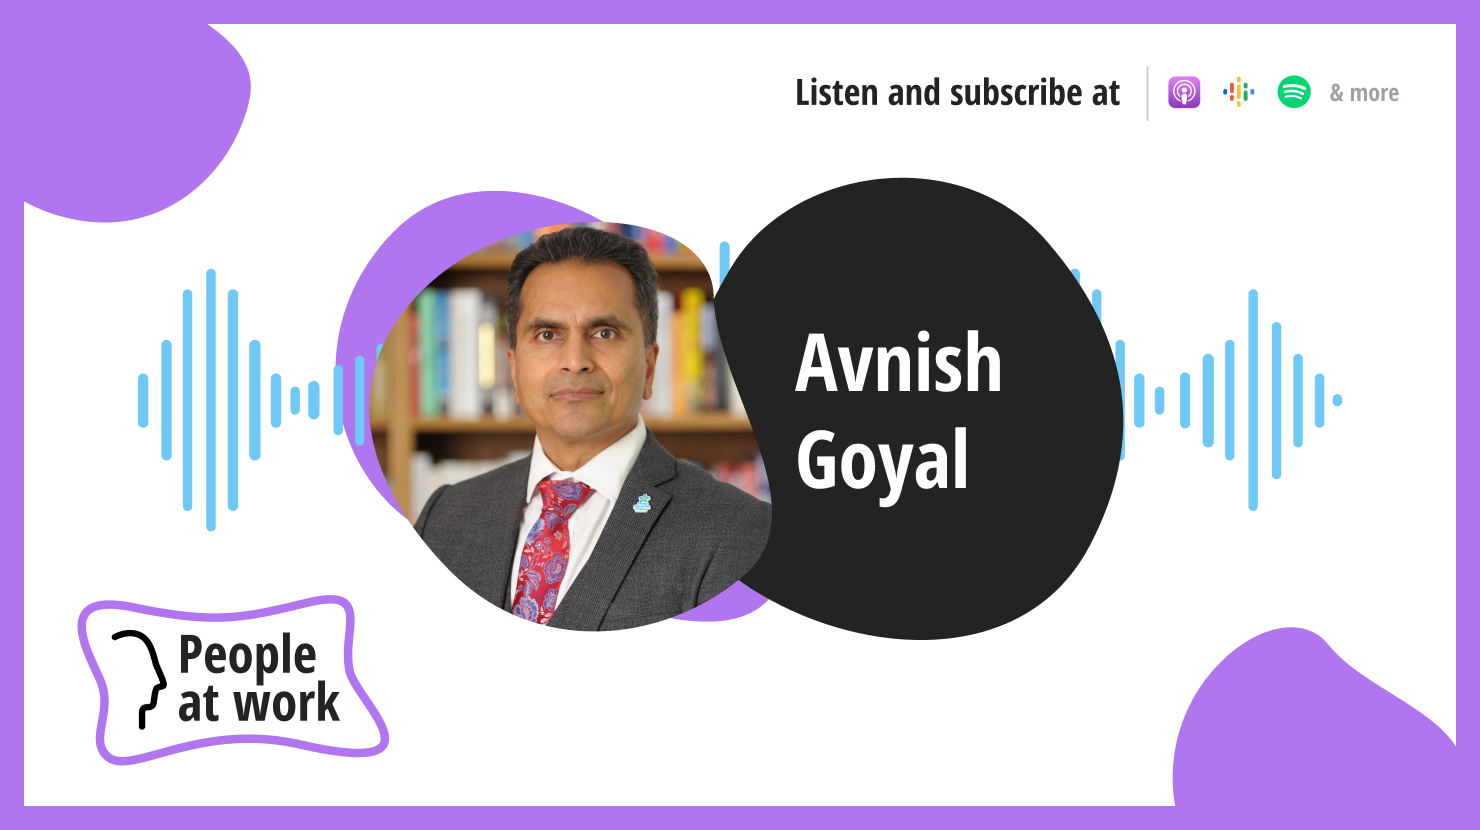 Personal development in the workplace feat. Avnish Goyal